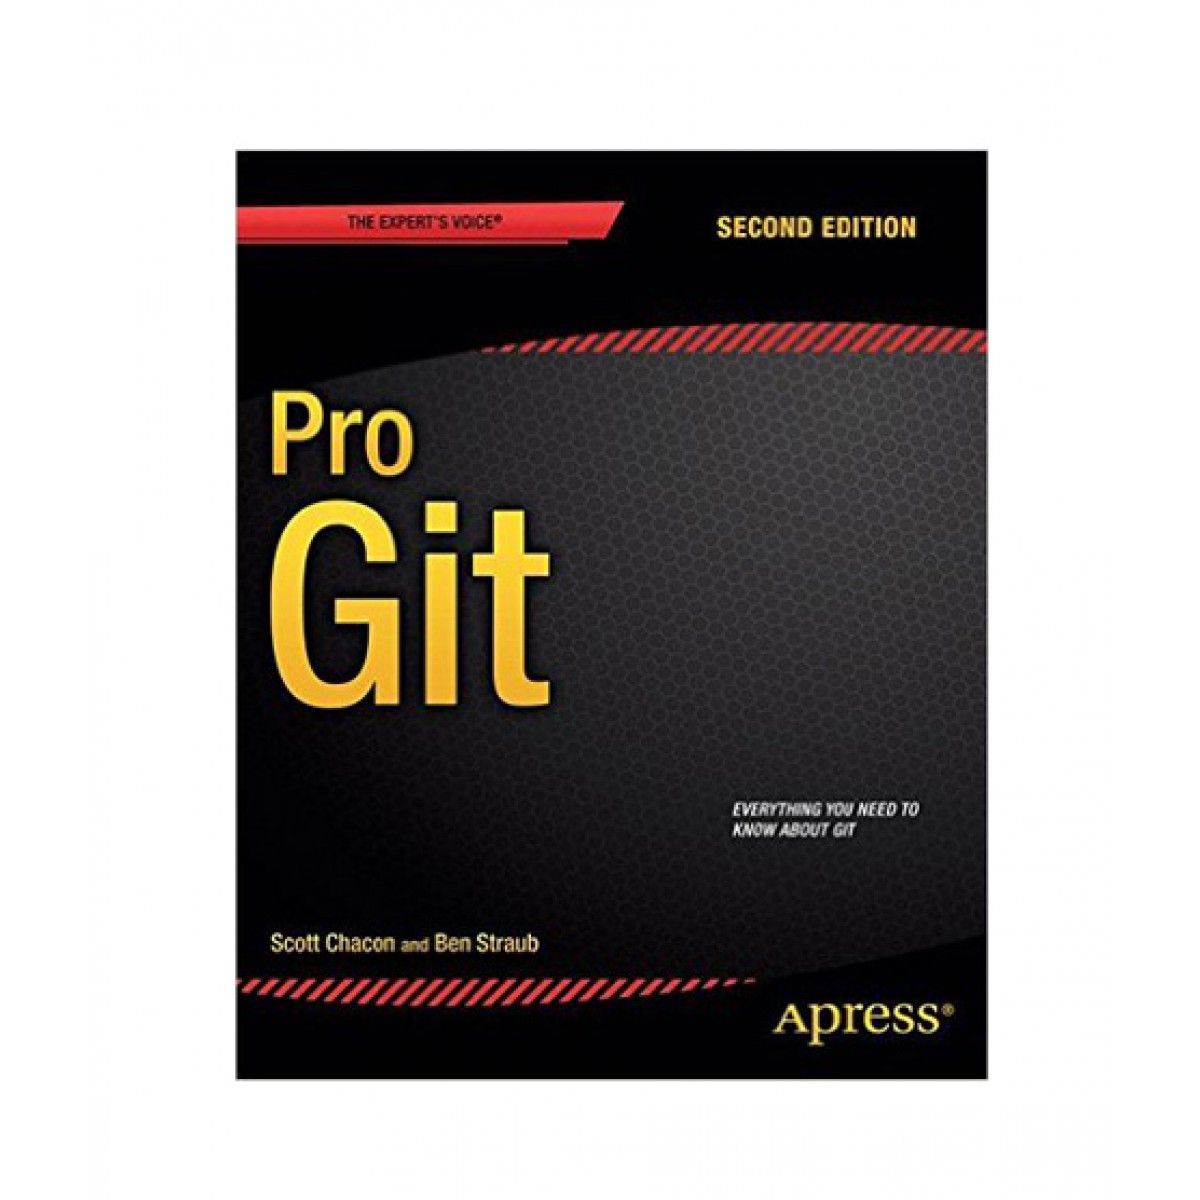 Pro Git Book 2nd Edition